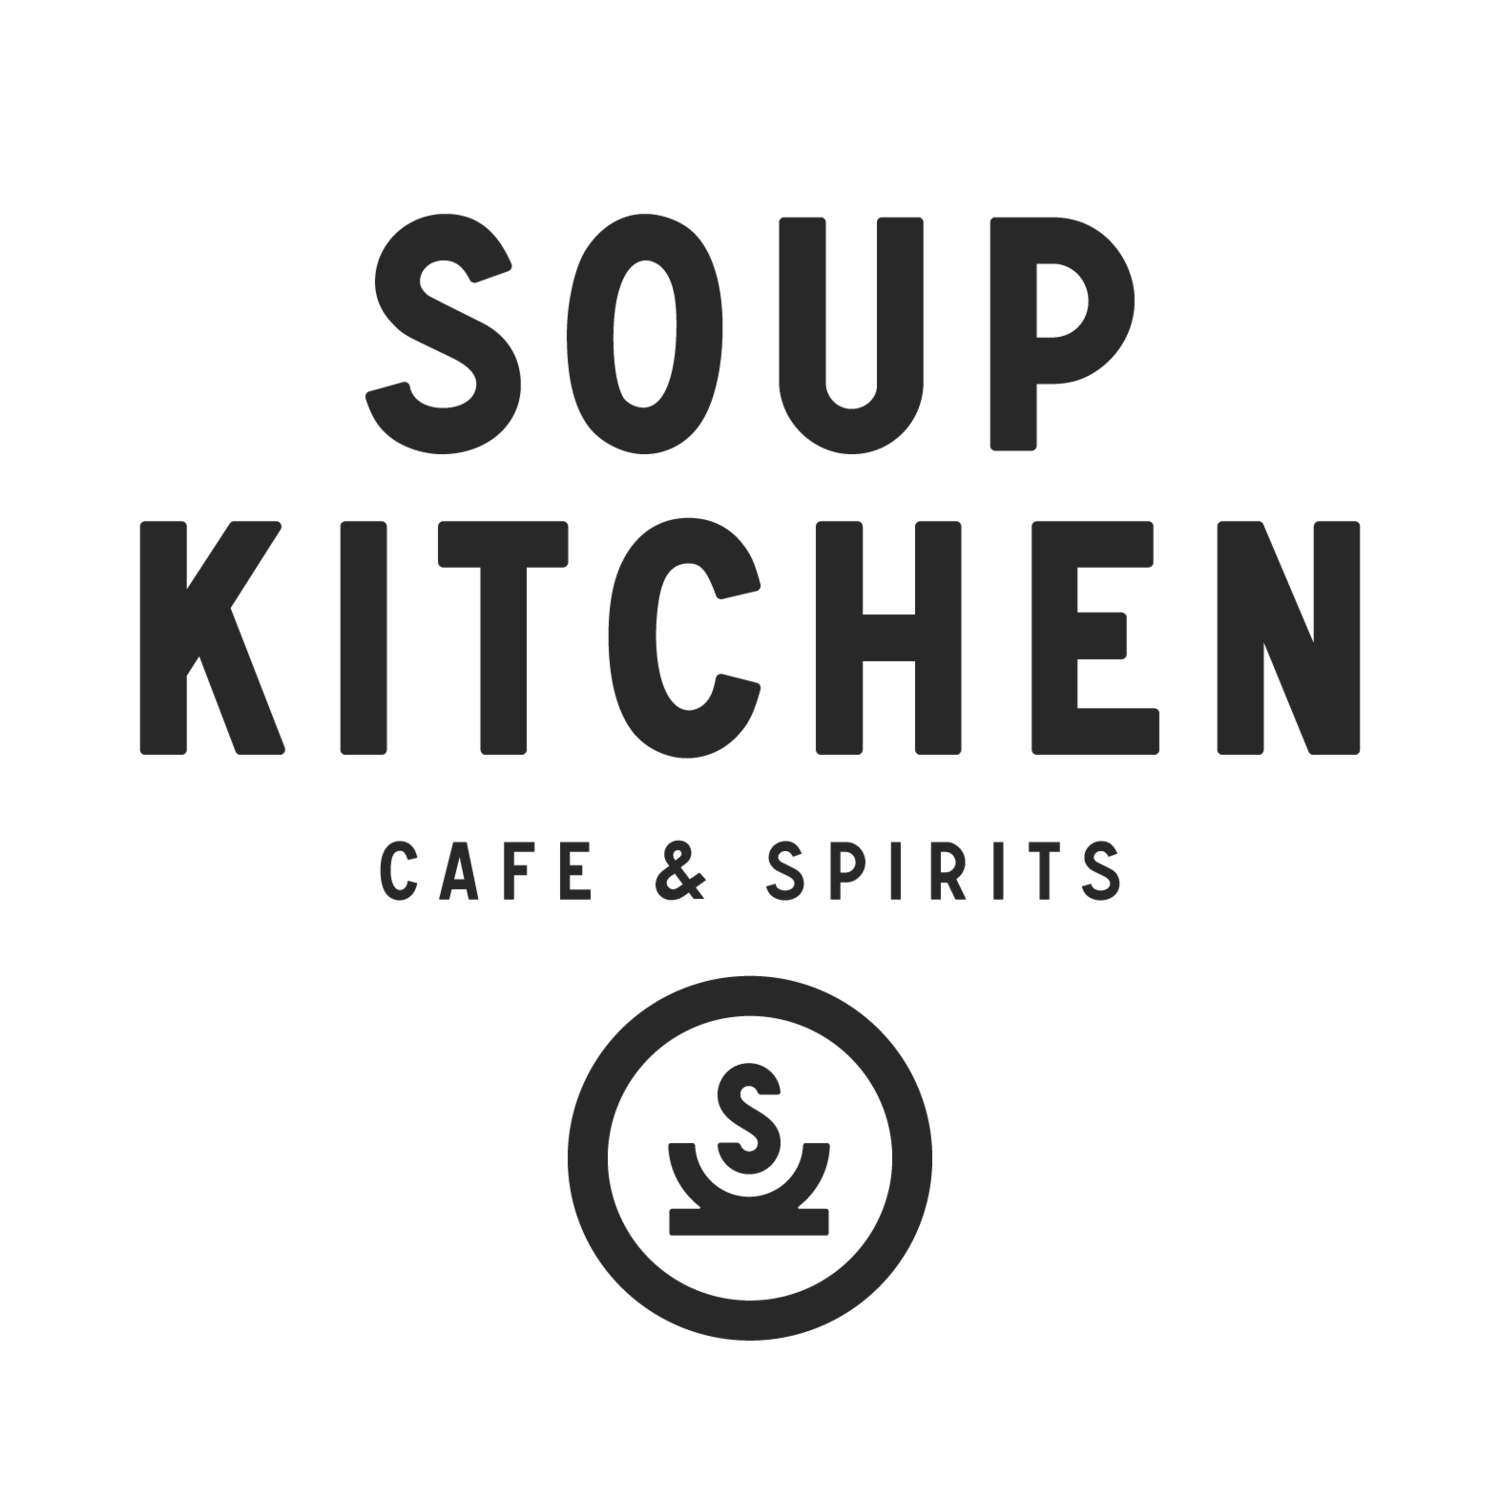 Soup Kitchen Cafe